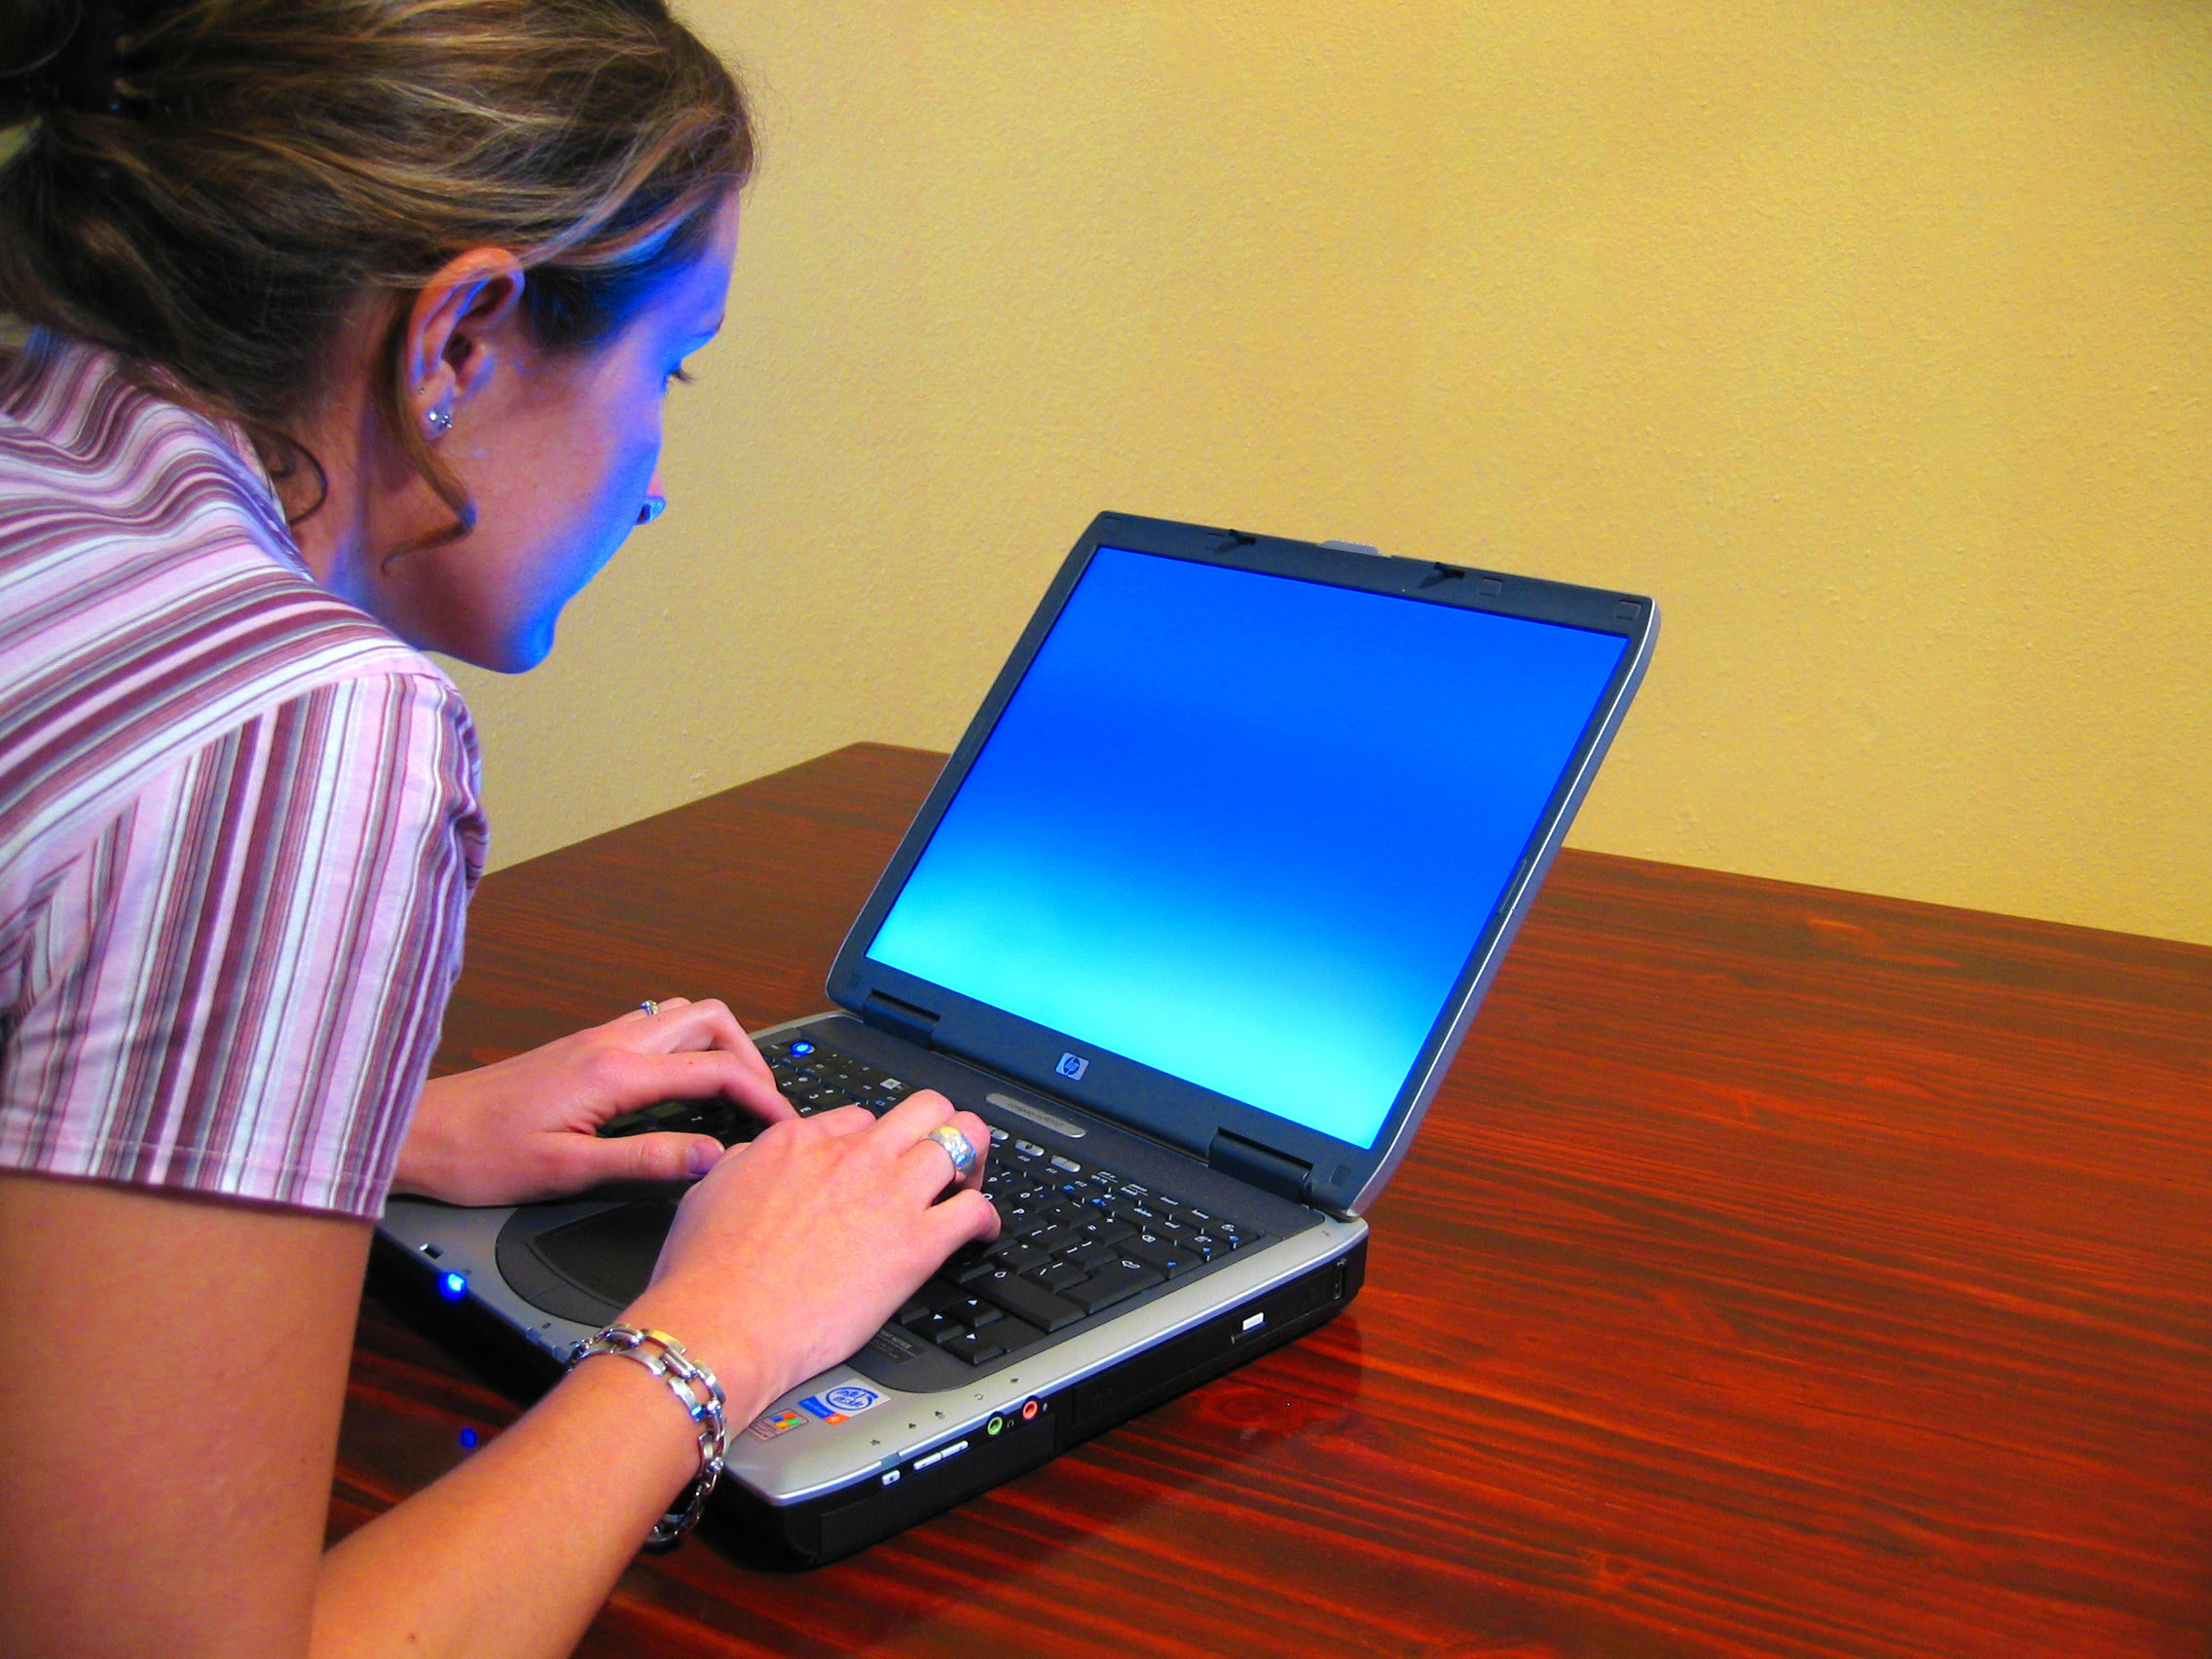 http://thedigitalprofessor.files.wordpress.com/2009/06/woman-typing-on-laptop.jpg